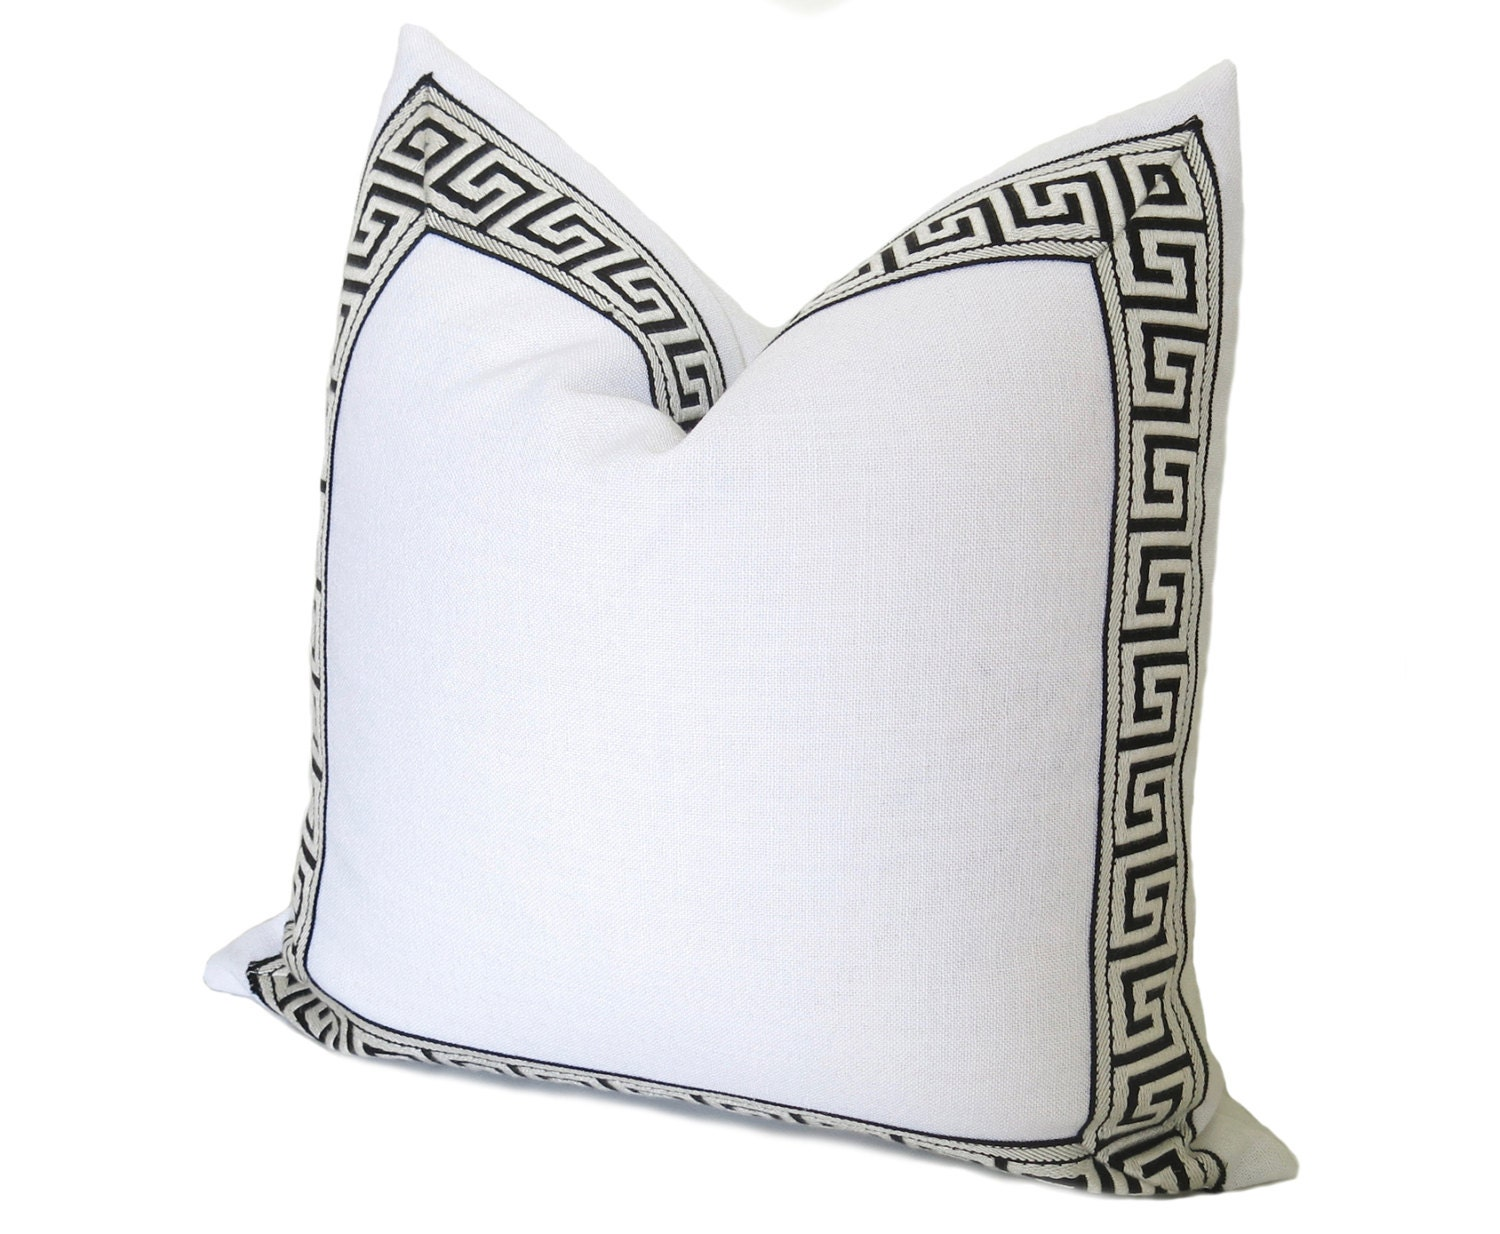 Throw Pillow Trim : Athena Linen Pillow Cover Greek Key Trim Pillow White